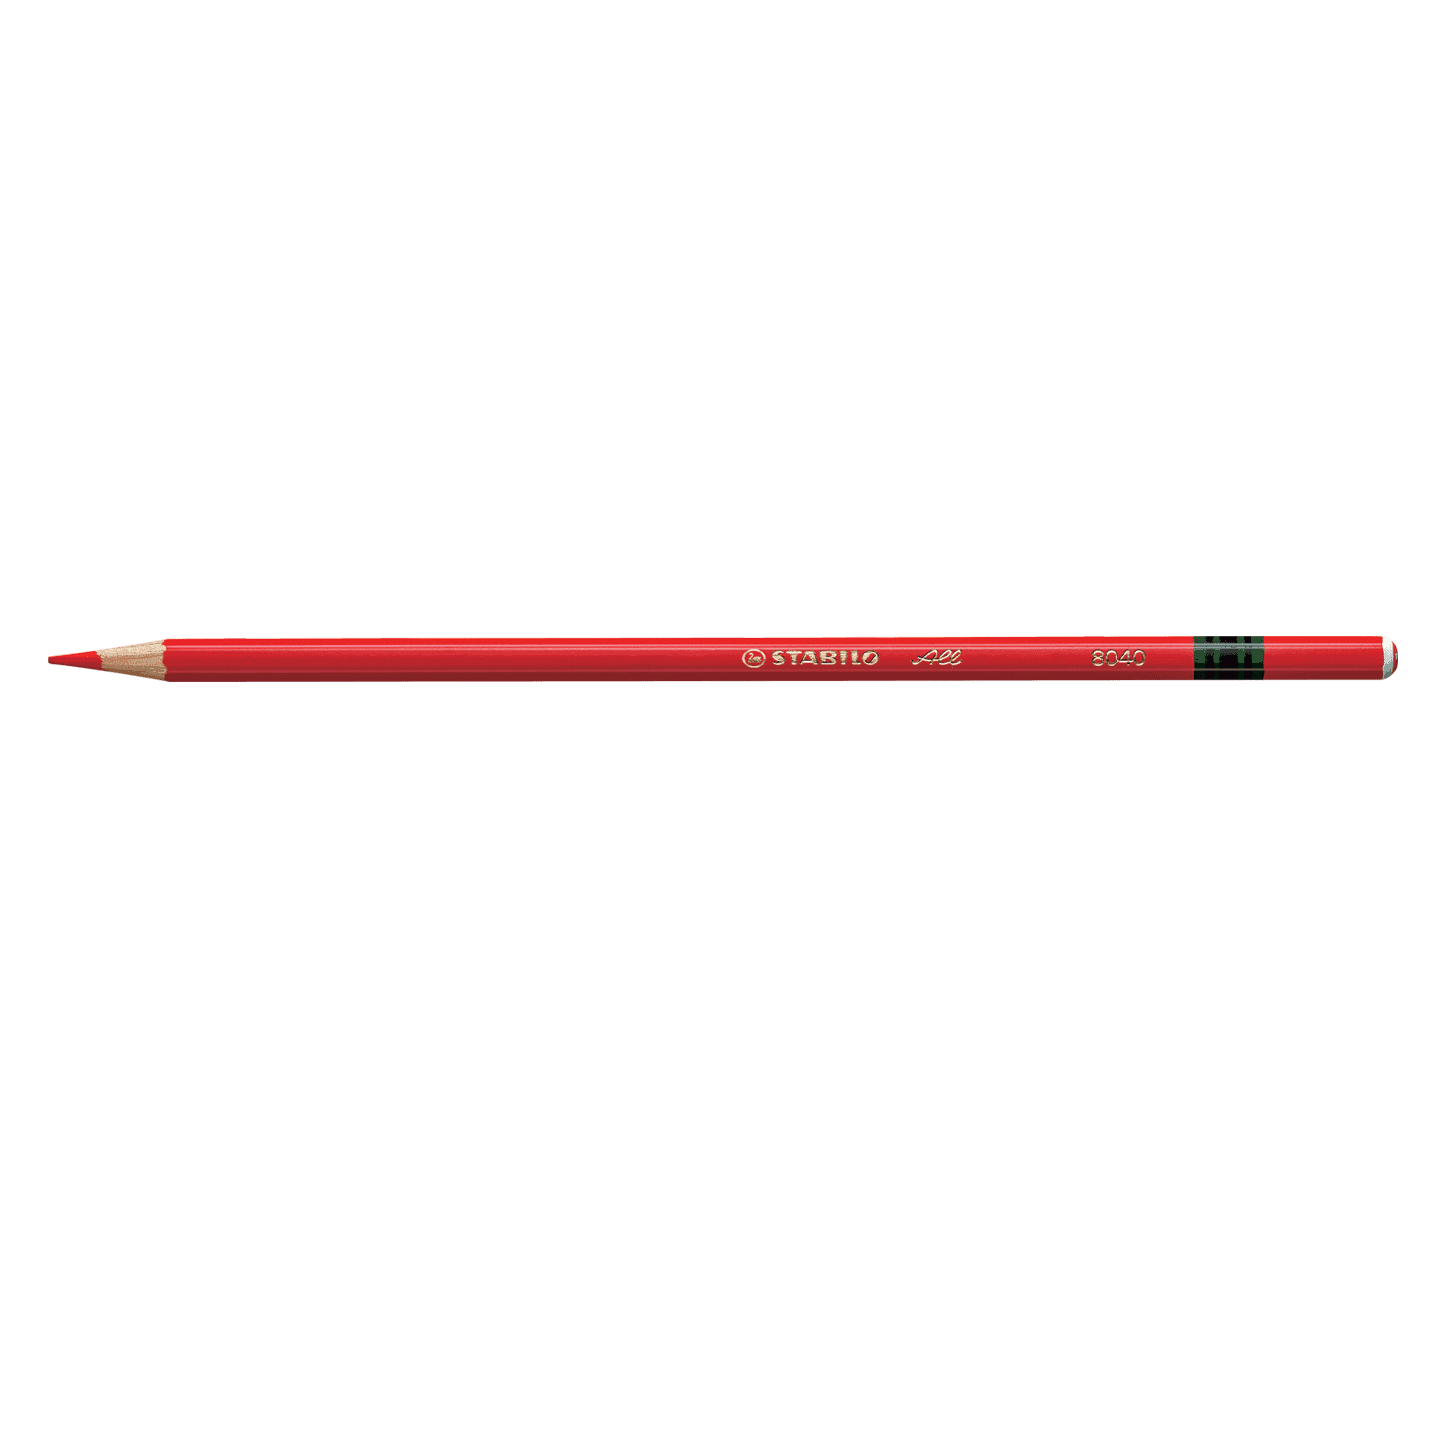 Pencil, Most Surfaces, All Red, Single